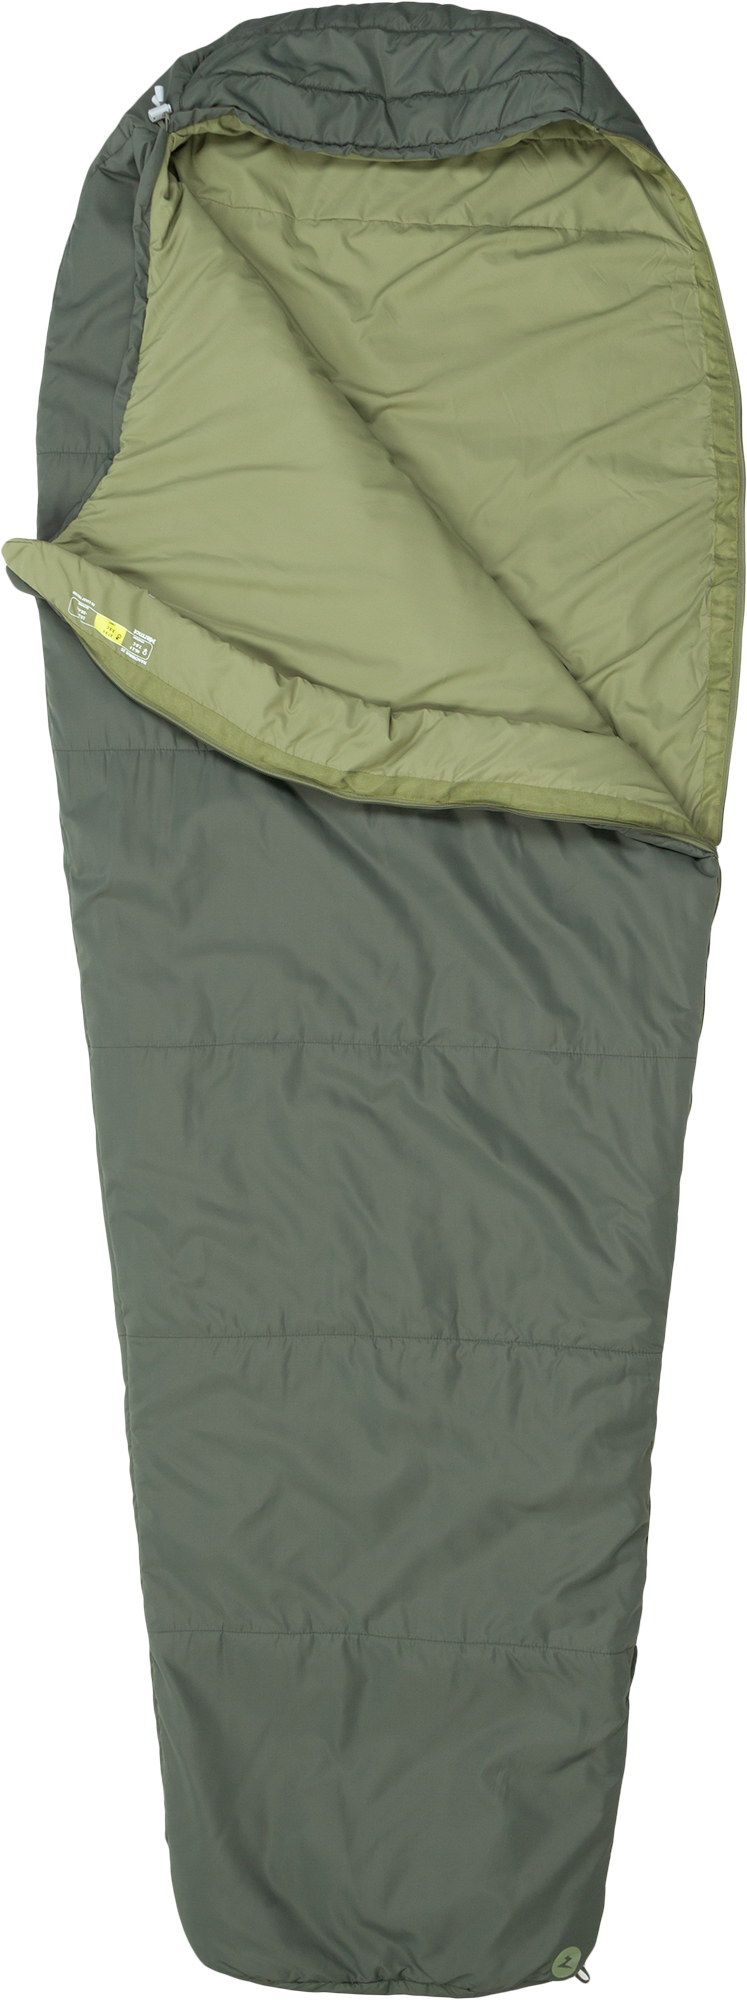 цена на Marmot Nanowave 35 Long